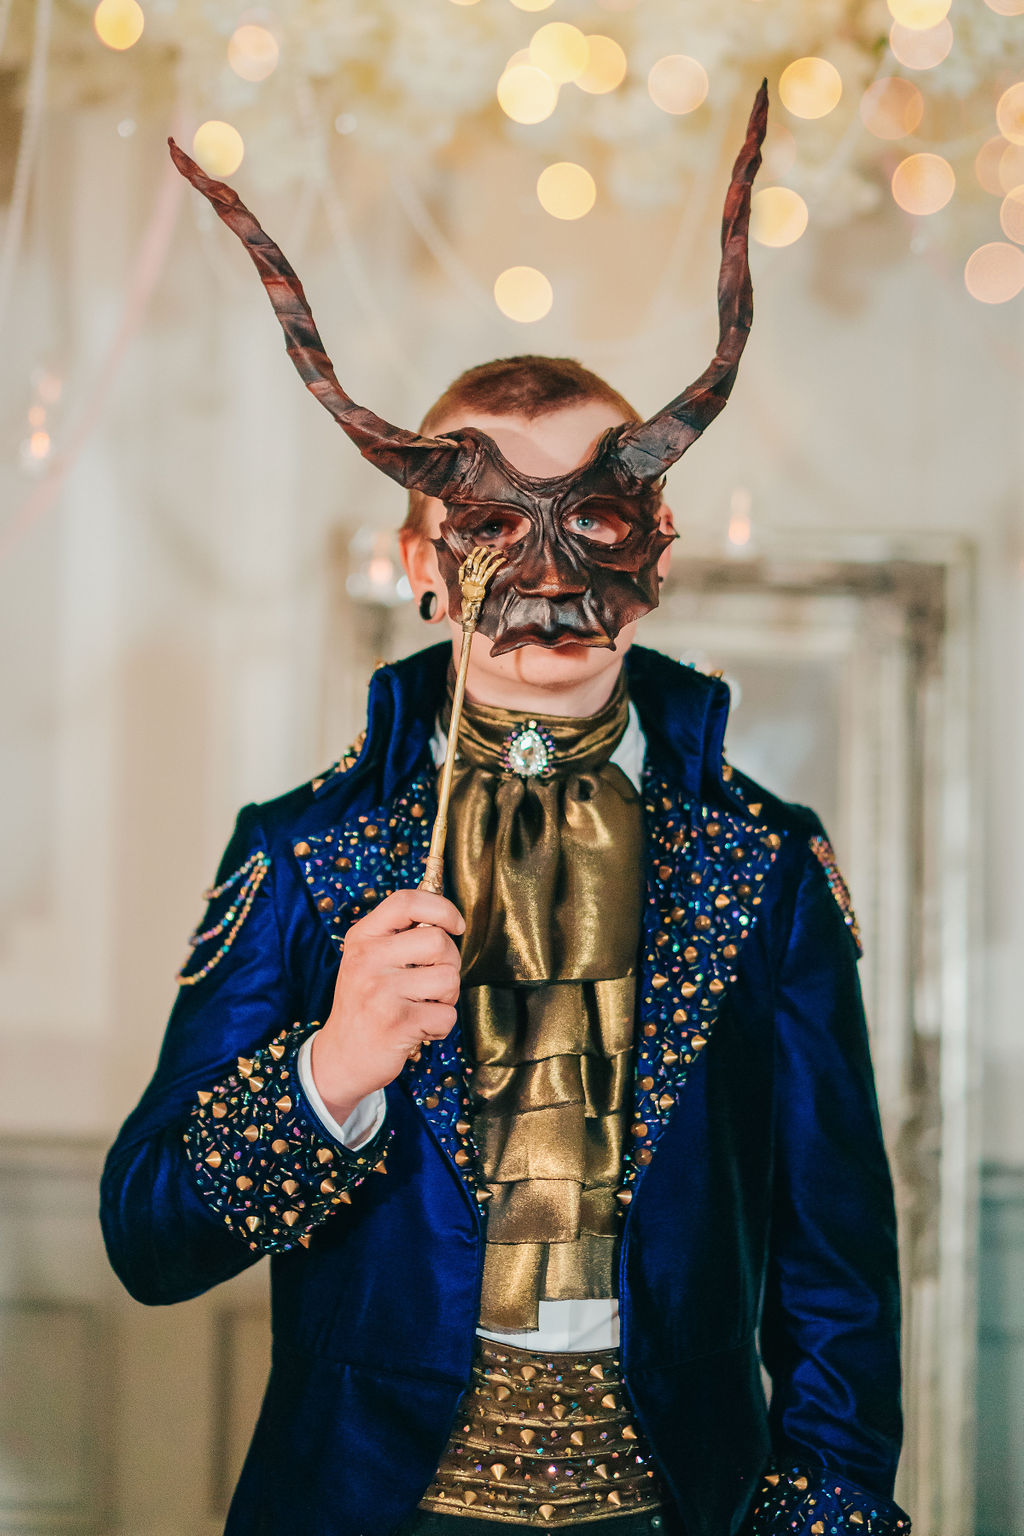 Groom holding masquerade mask for movie themed wedding day wearing royal blue suit with jeweled details